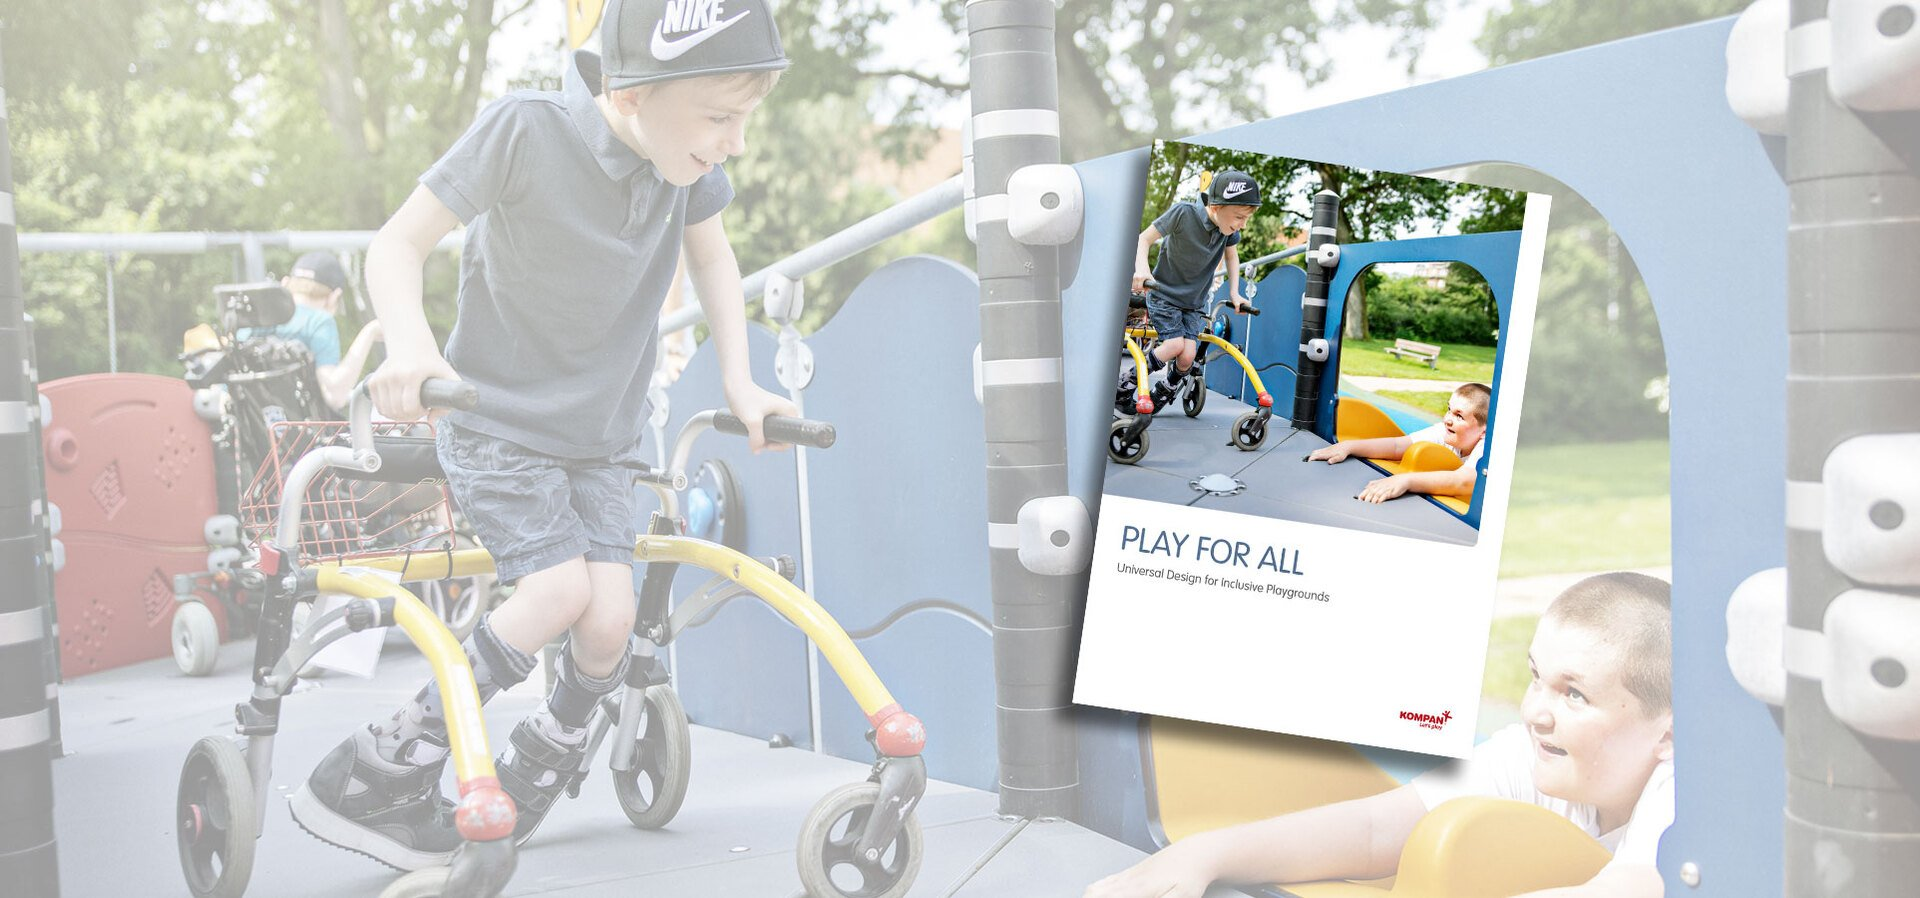 Inclusive Play For All